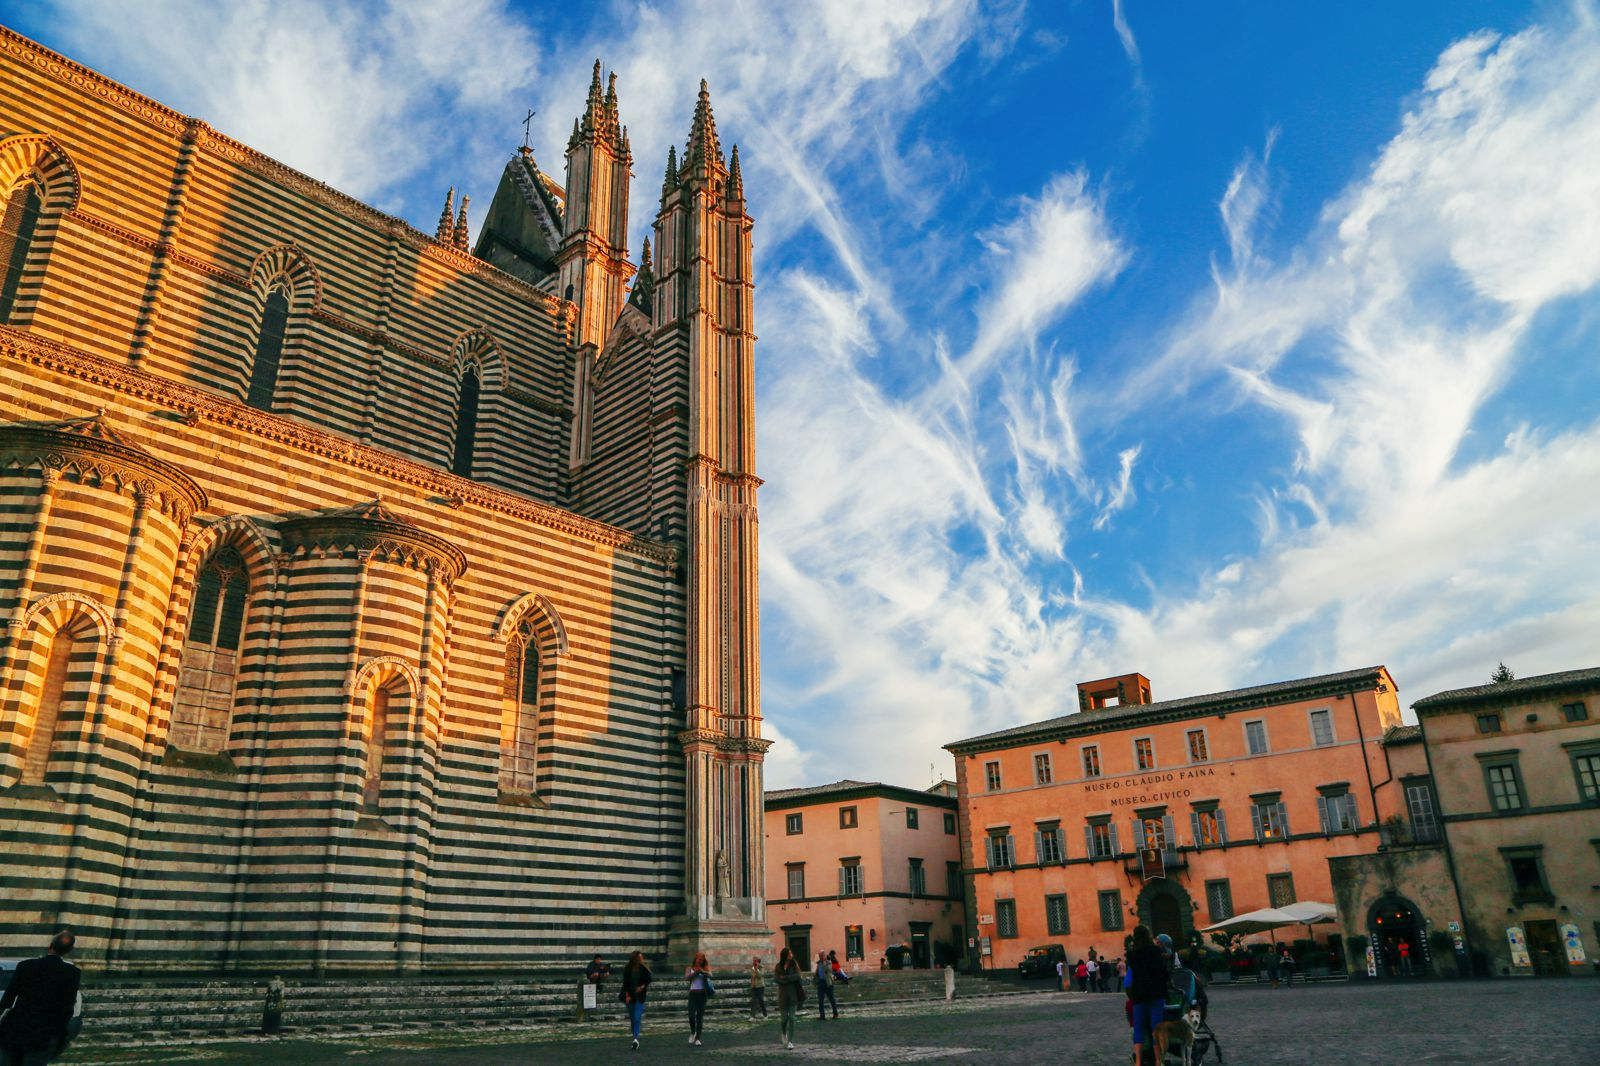 Orvieto - The Most Dramatic City In Europe (2)